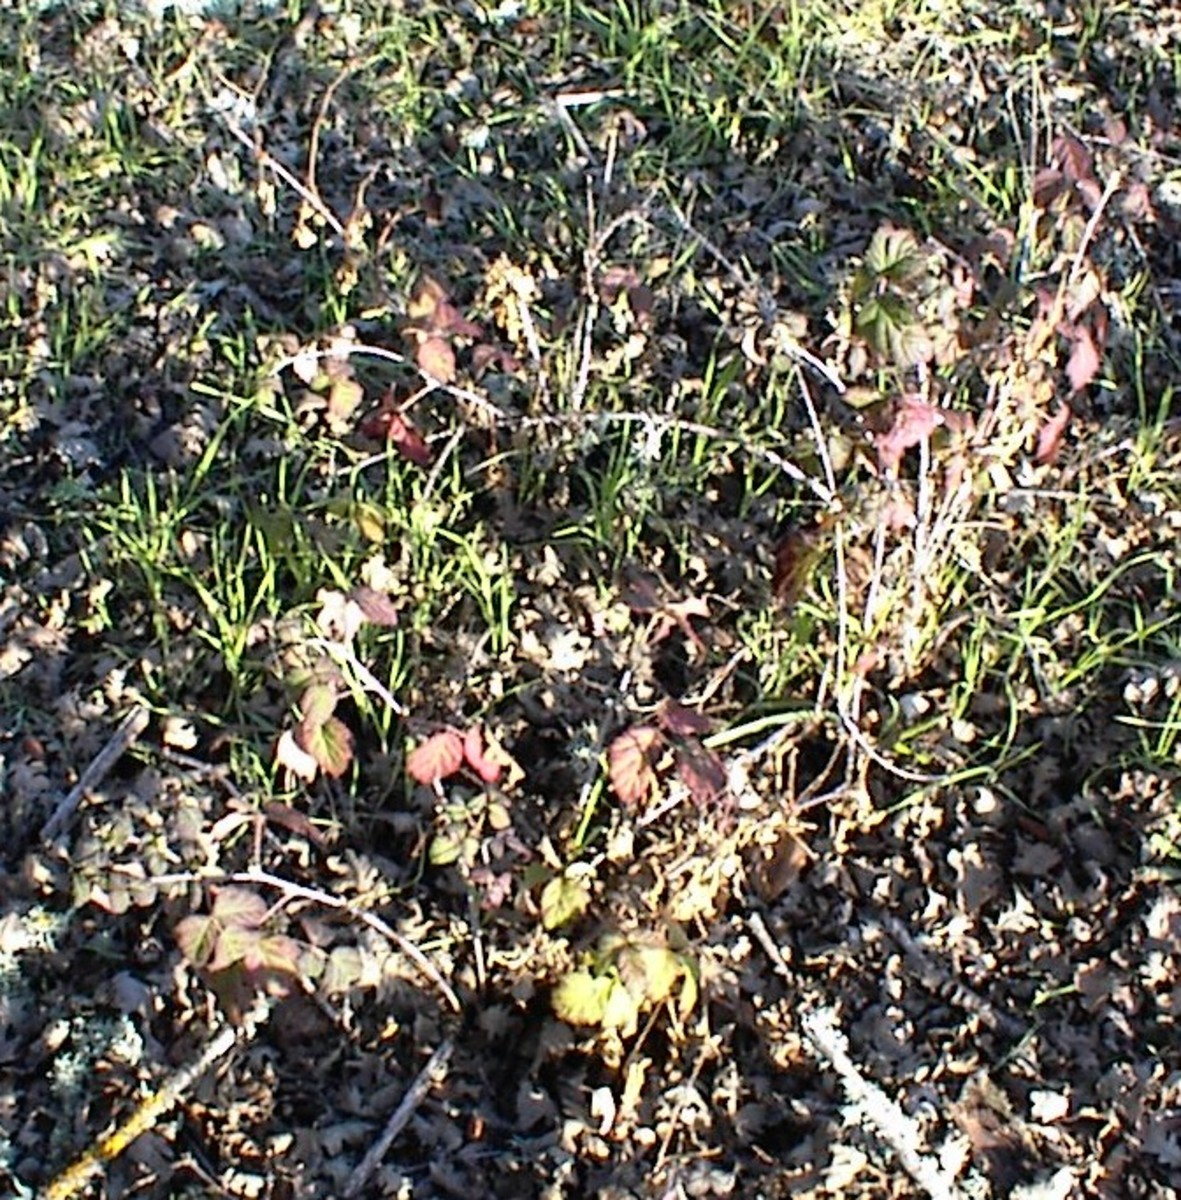 Be sure to click to see the details of these poison oak plants almost hidden where the oak leaves have fallen around them in February. This was taken on Jack Creek Road in Paso Robles.